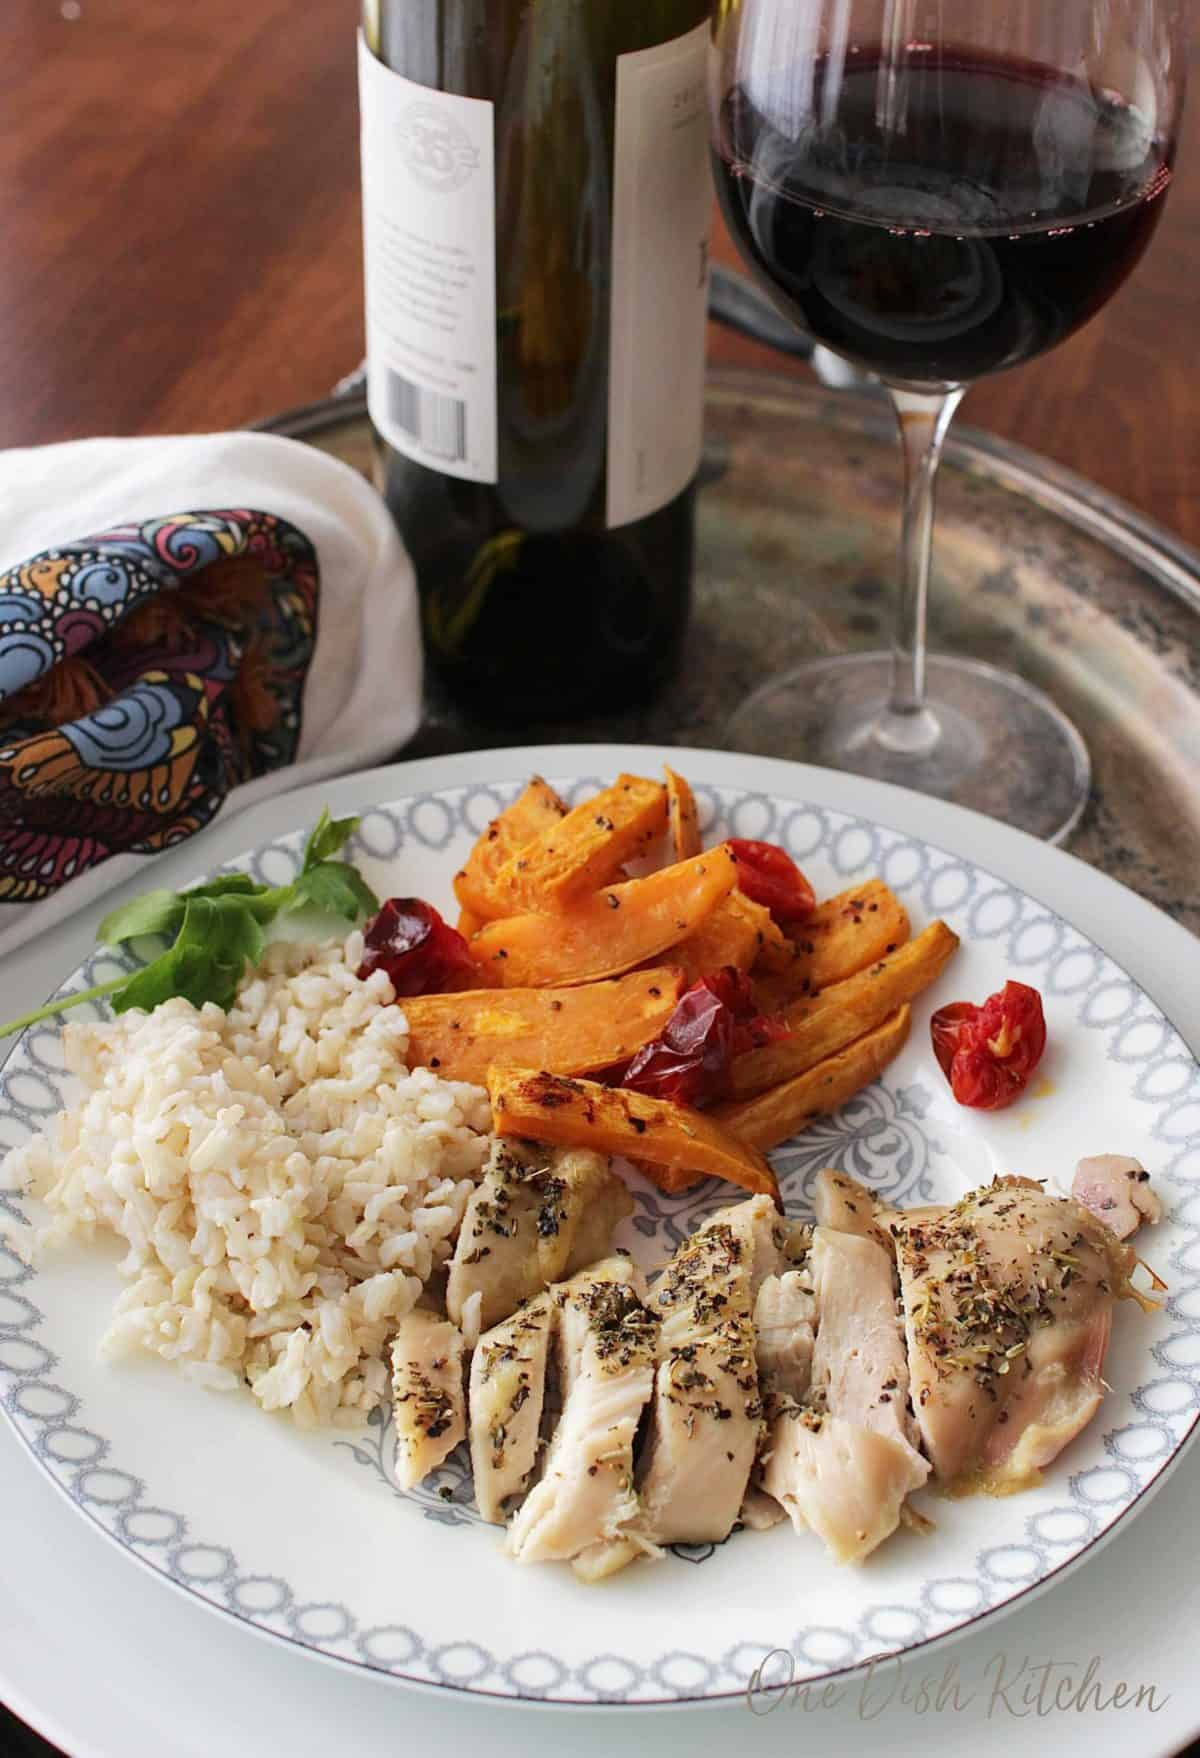 A plate of sliced chicken with roasted sweet potatoes slices, roasted cherry tomatoes, and brown rice next to a glass of red wine all on a metal tray